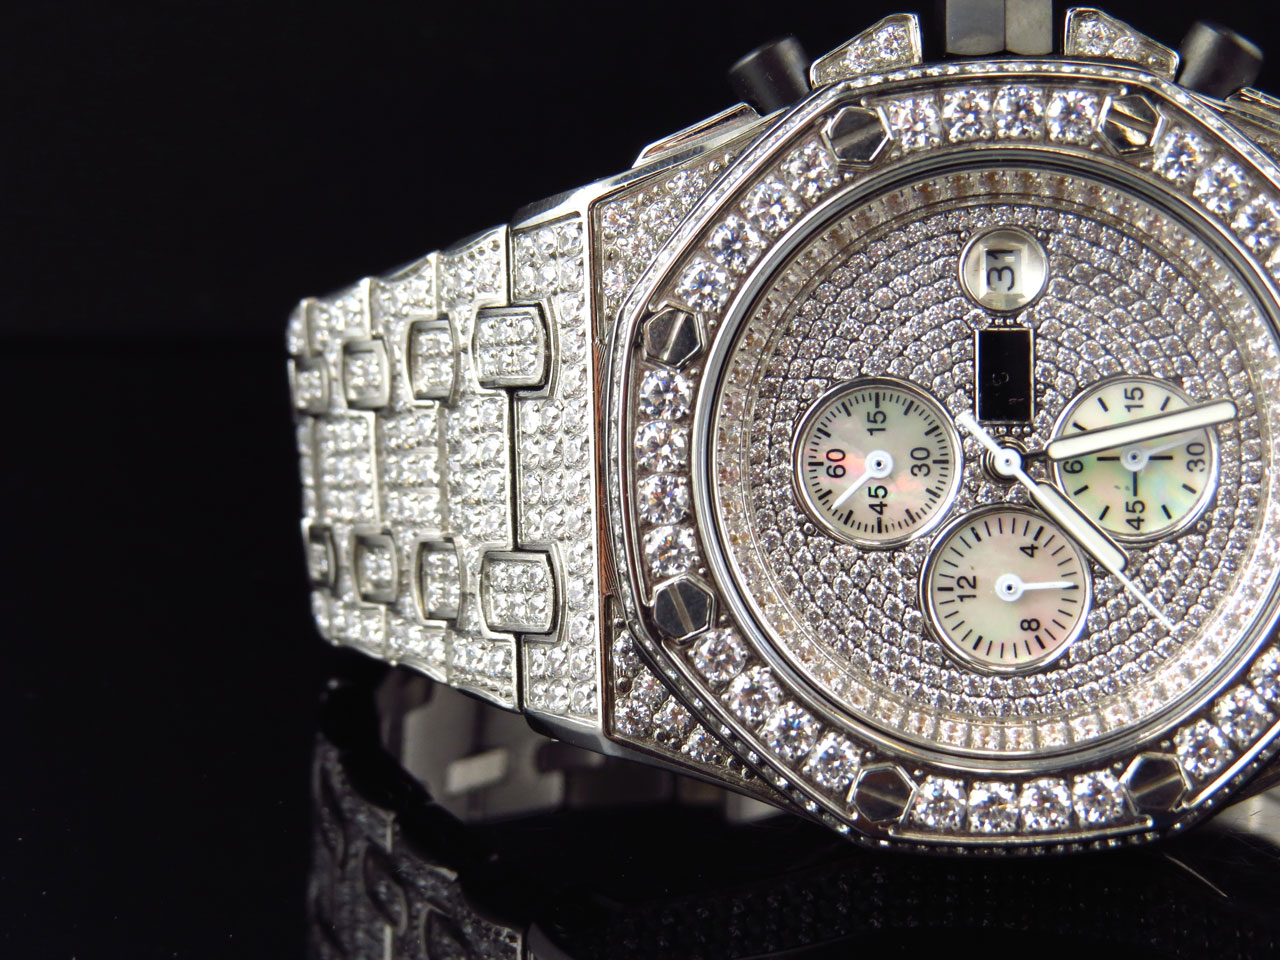 0f92efec87436 Details about Iced Mens Jewelry Unlimited Jojino Joe Rodeo Lab Diamond  Chronograph Watch 43MM